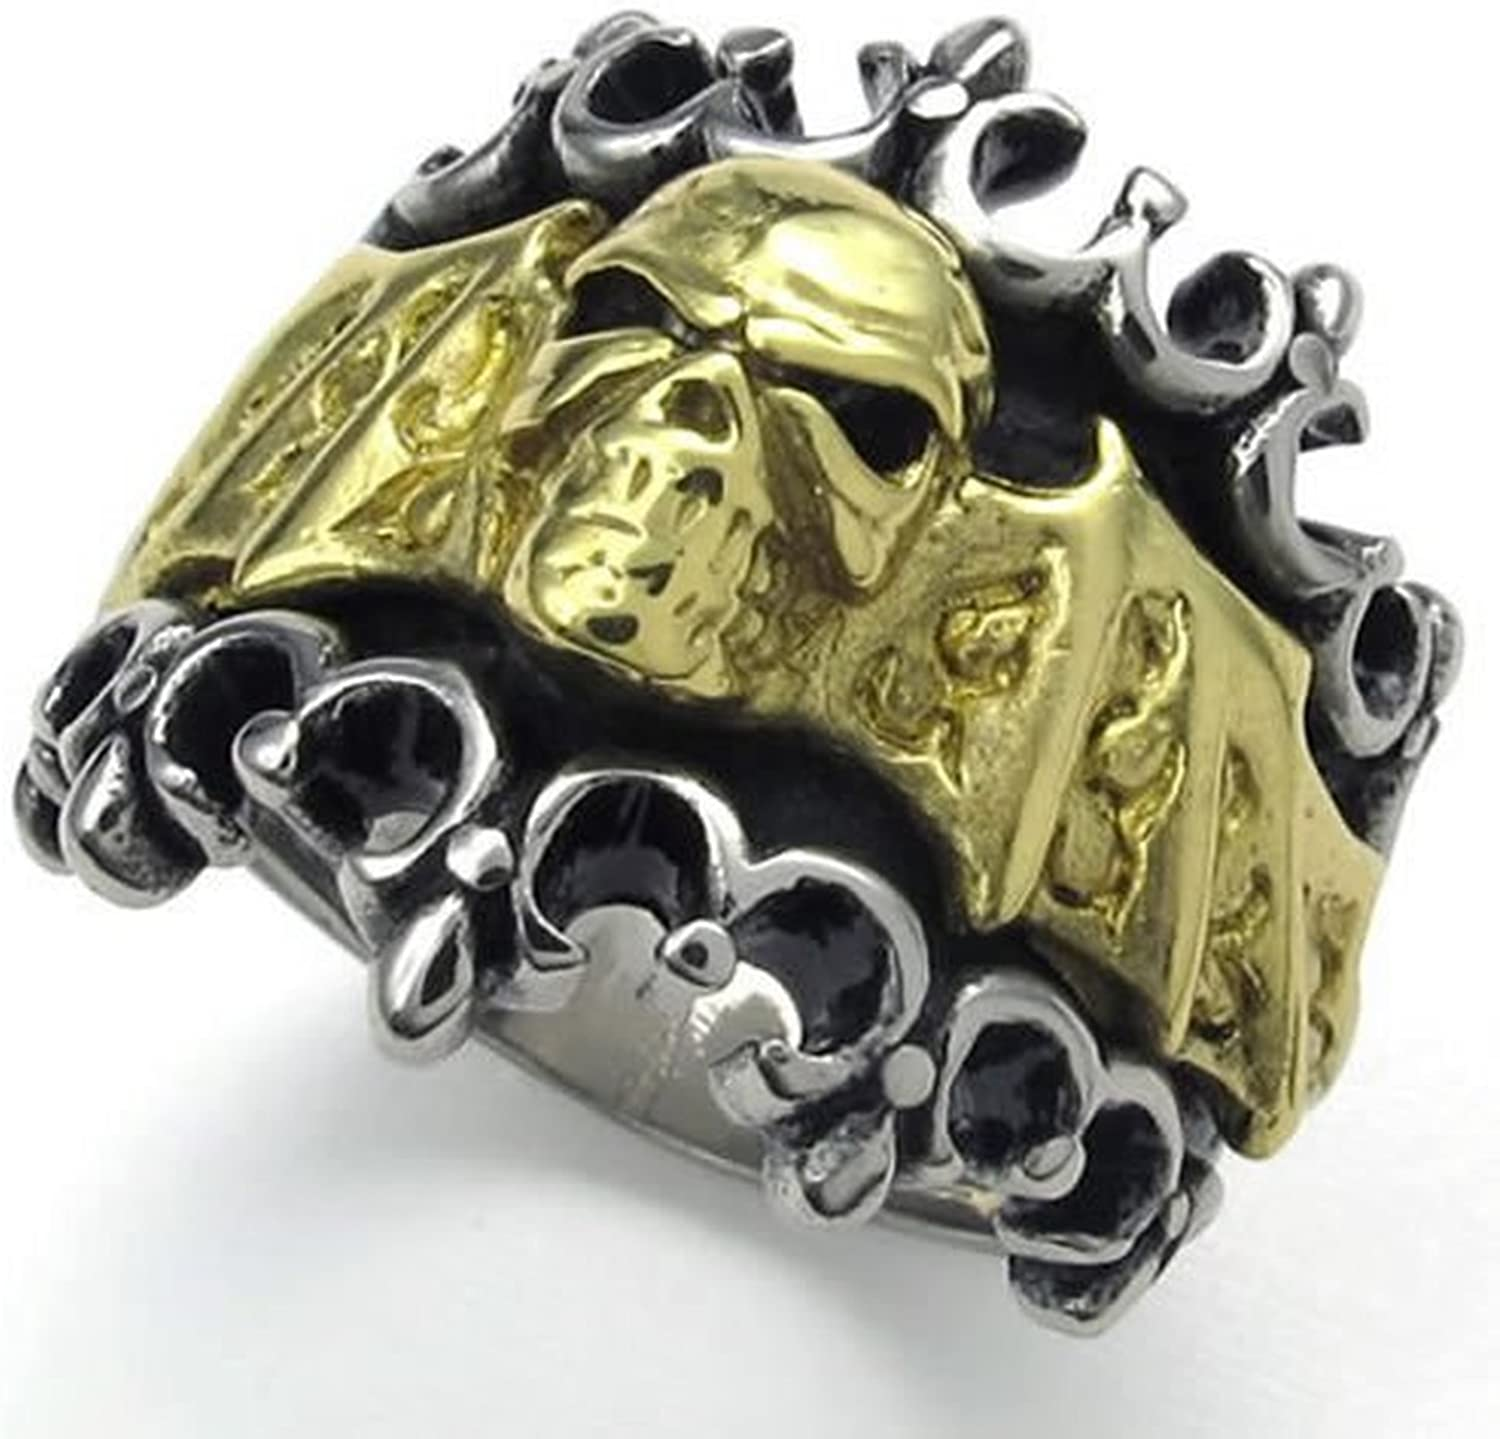 CLJSTORE Jewelry Vintage Stainless Steel Bat Skull Biker Mens Ring Color Gold Silver Black